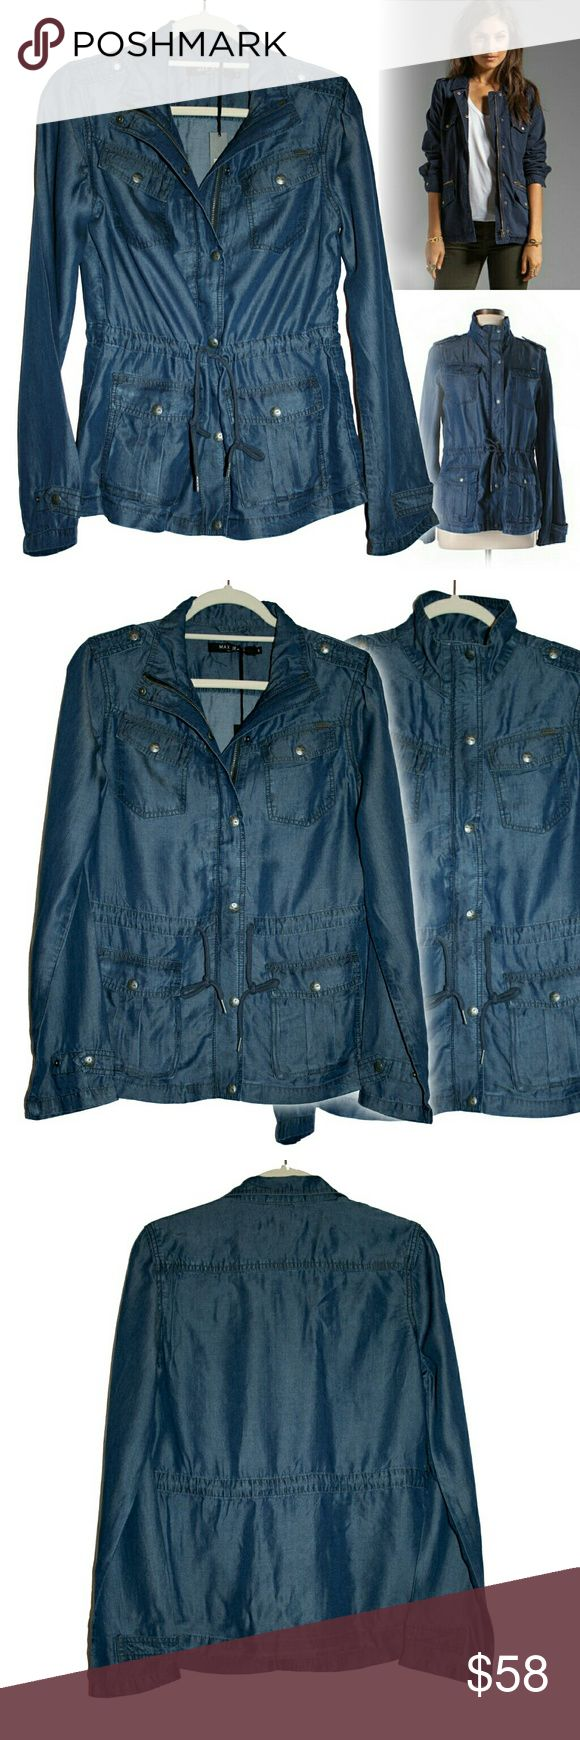 ✨1 HR SALE✨ S,M MAX Denim Tencel Jacket NWT This denim anorak has so many great details! It features four patch pockets giving urban safari vibes, a drawstring that cinches the waist, long sleeves w/ roll tabs, both zipper & snap buttons for closure, and buttons on the shoulders & cuffs. Buttons are distressed & pewter-colored. The denim fabric is 100% Tencel w/ subtle shine to it. Tencel is a VERY sustainable fabric from eucalyptus trees and feels like rayon & bamboo. It is comfortable…